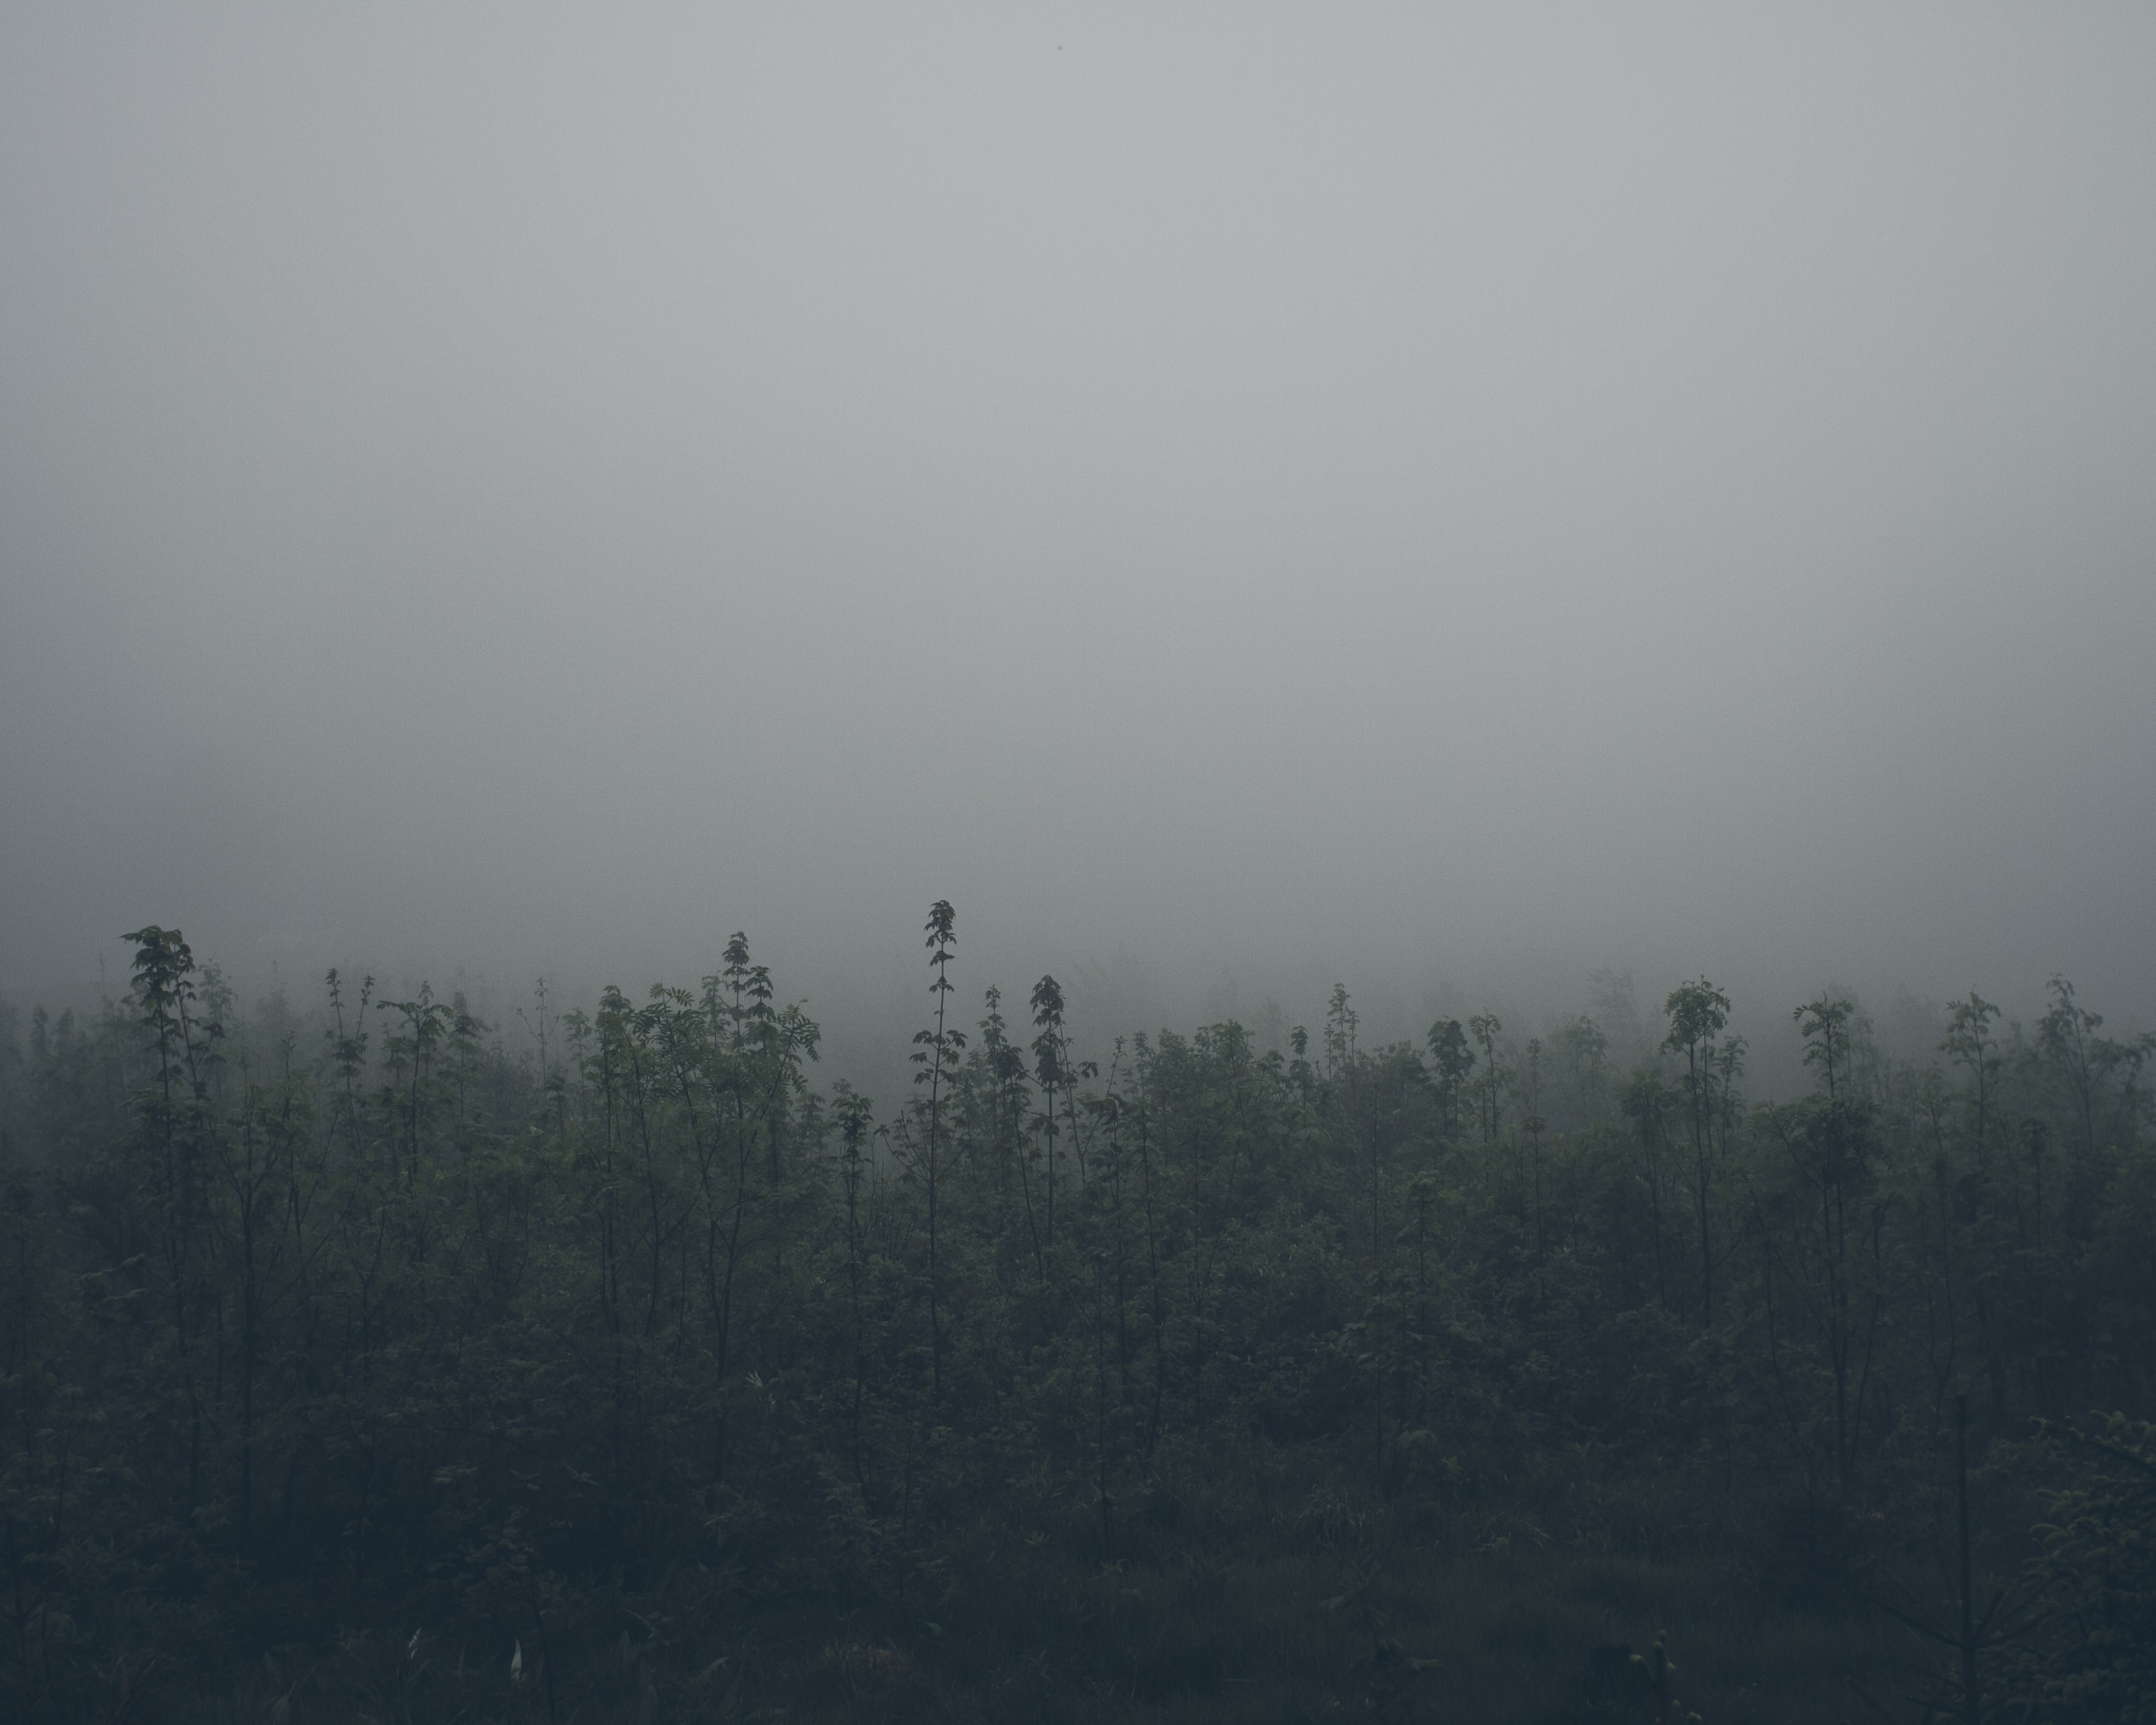 landscape photography of green leaf trees under cloudy sky